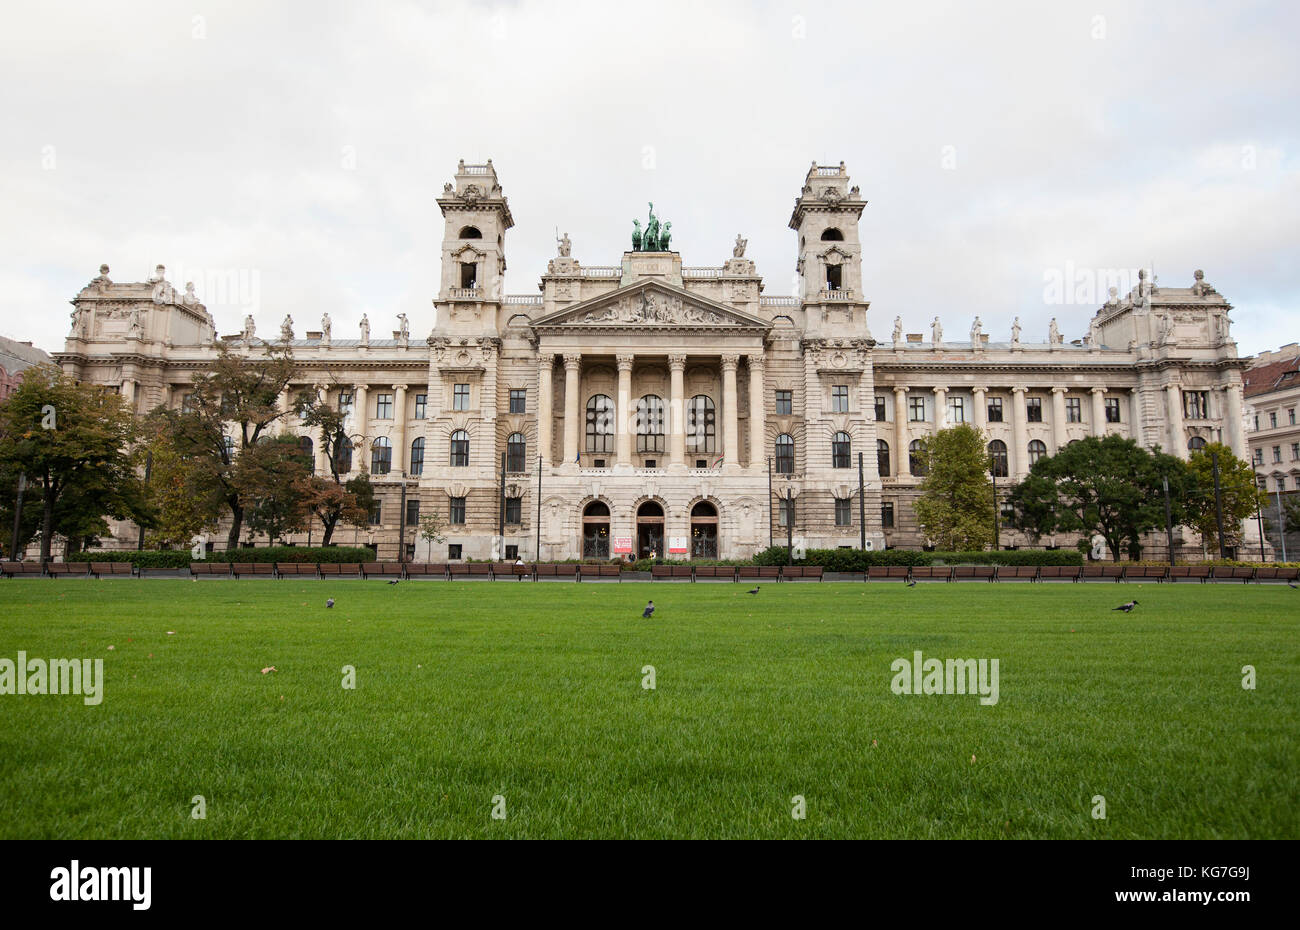 BUDAPEST - SEPTEMBER 17, 2017: The Museum of Ethnography in Budapest is one of Europe's largest, most important - Stock Image